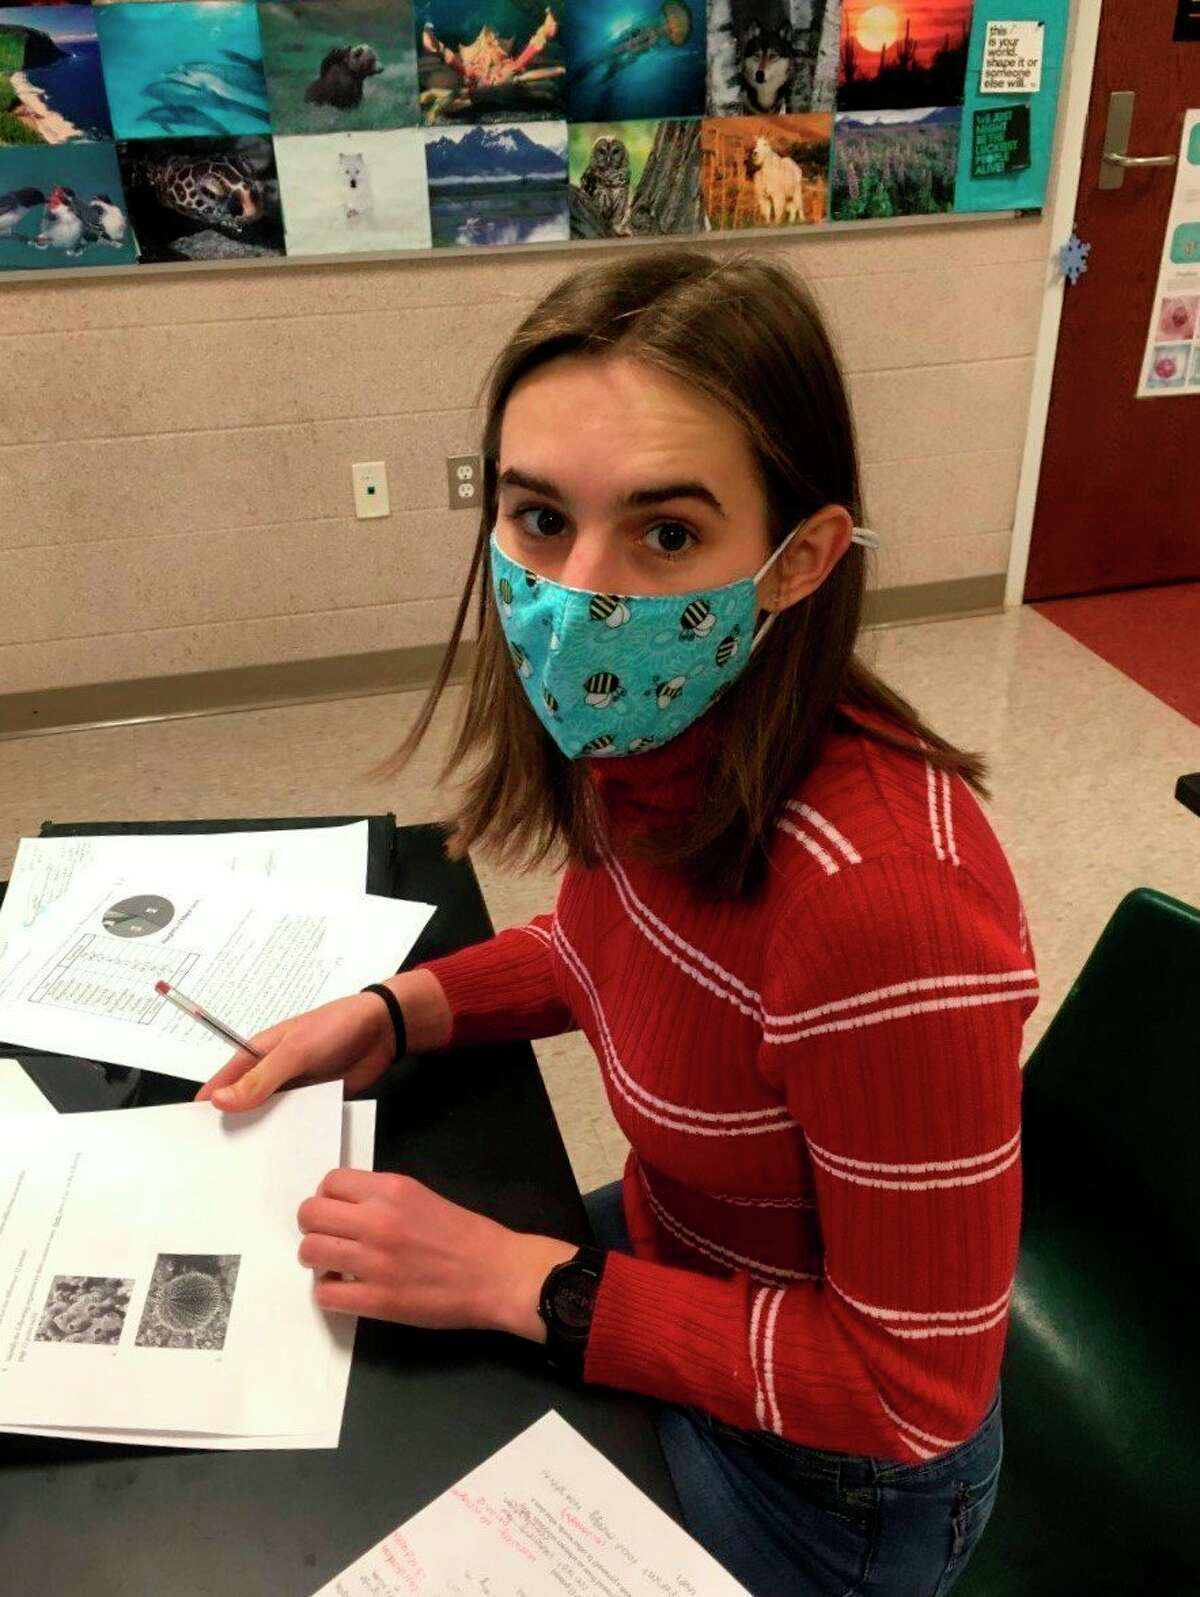 In this file photo, Solana Postma competes in the Water Quality event during Manistee High School's first-place finish in a Science Olympiad regional tournament held virtually in March. (File photo)